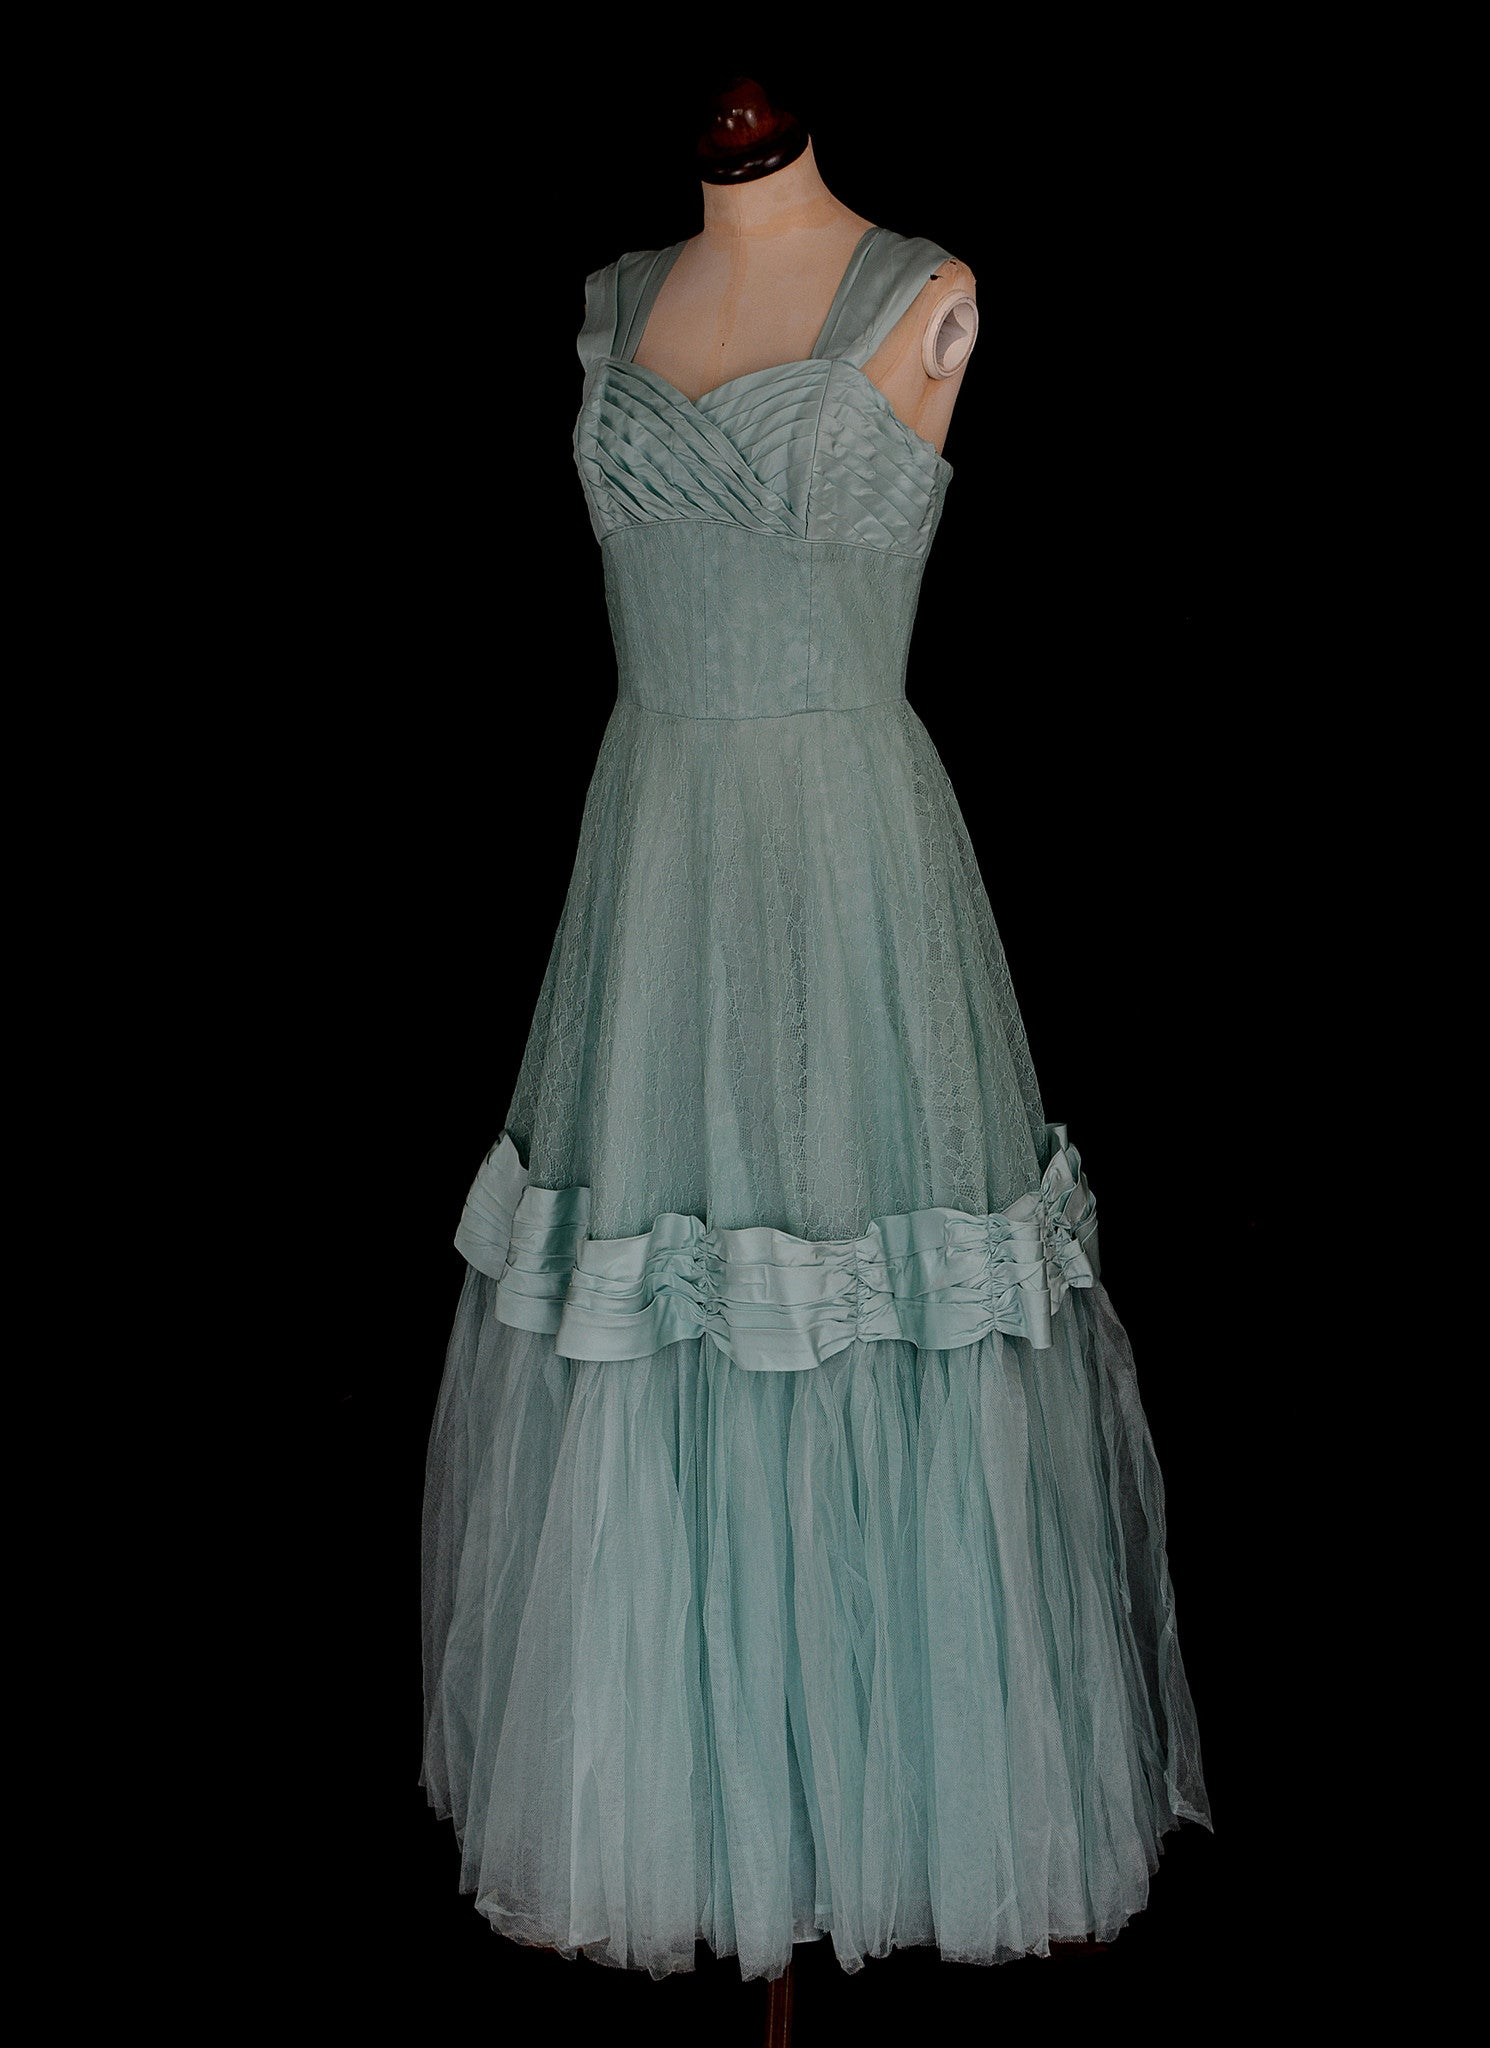 Vintage 1950s Blue Lace Formal Gown